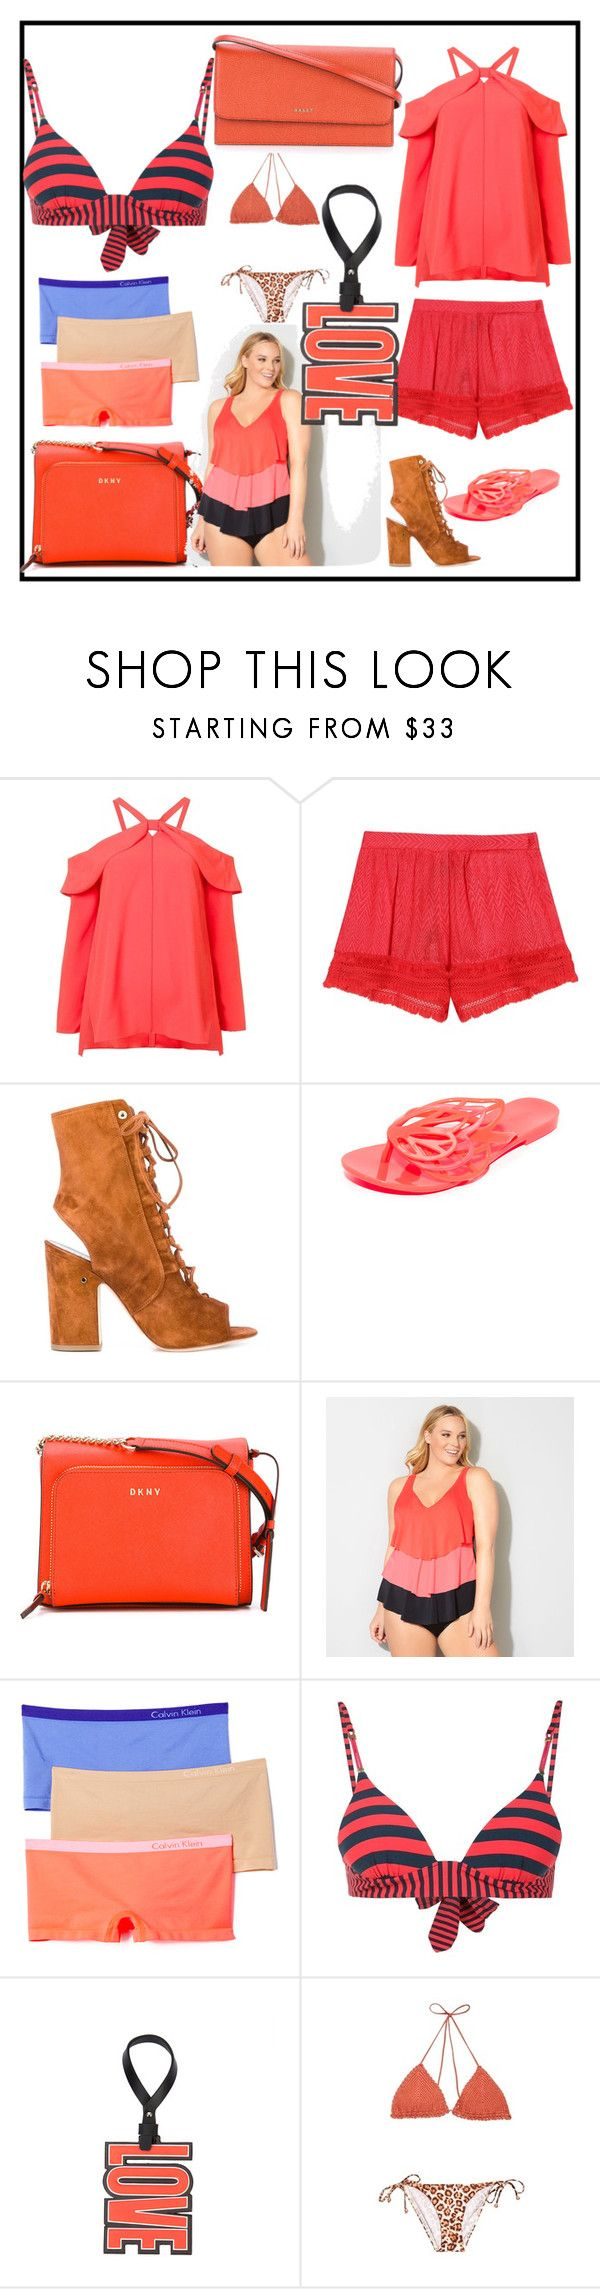 """the first time of set"" by denisee-denisee ❤ liked on Polyvore featuring Proenza Schouler, Missoni, Laurence Dacade, Melissa, DKNY, Avenue, Calvin Klein Underwear, STELLA McCARTNEY, Givenchy and Zimmermann"